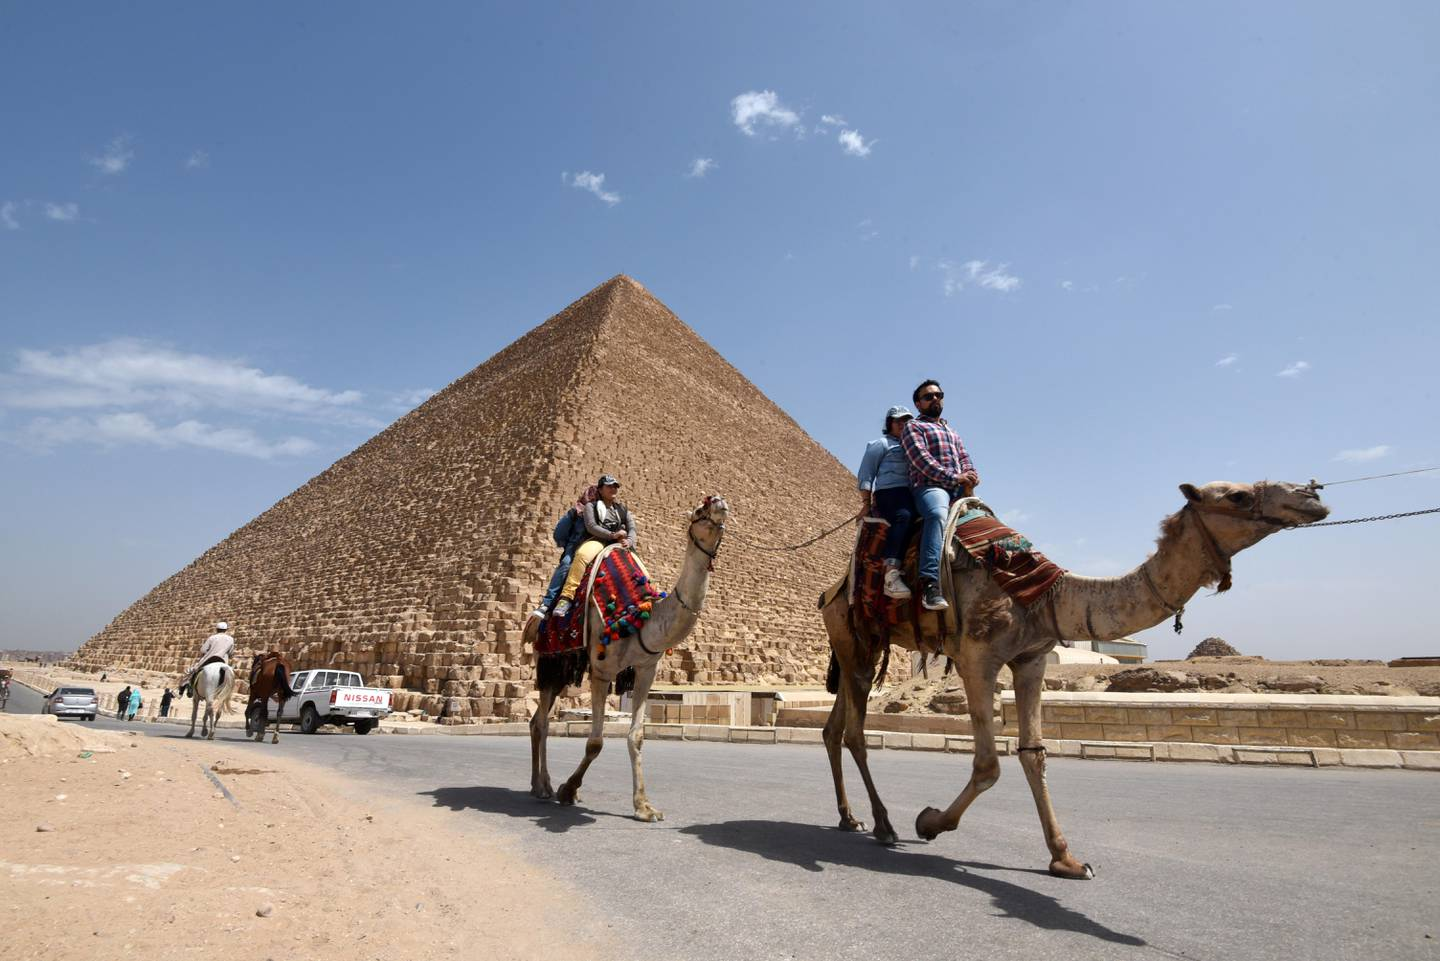 Tourists on camels ride past a pyramid at Cairo's northern Giza province, on March 29, 2017. / AFP PHOTO / MOHAMED EL-SHAHED